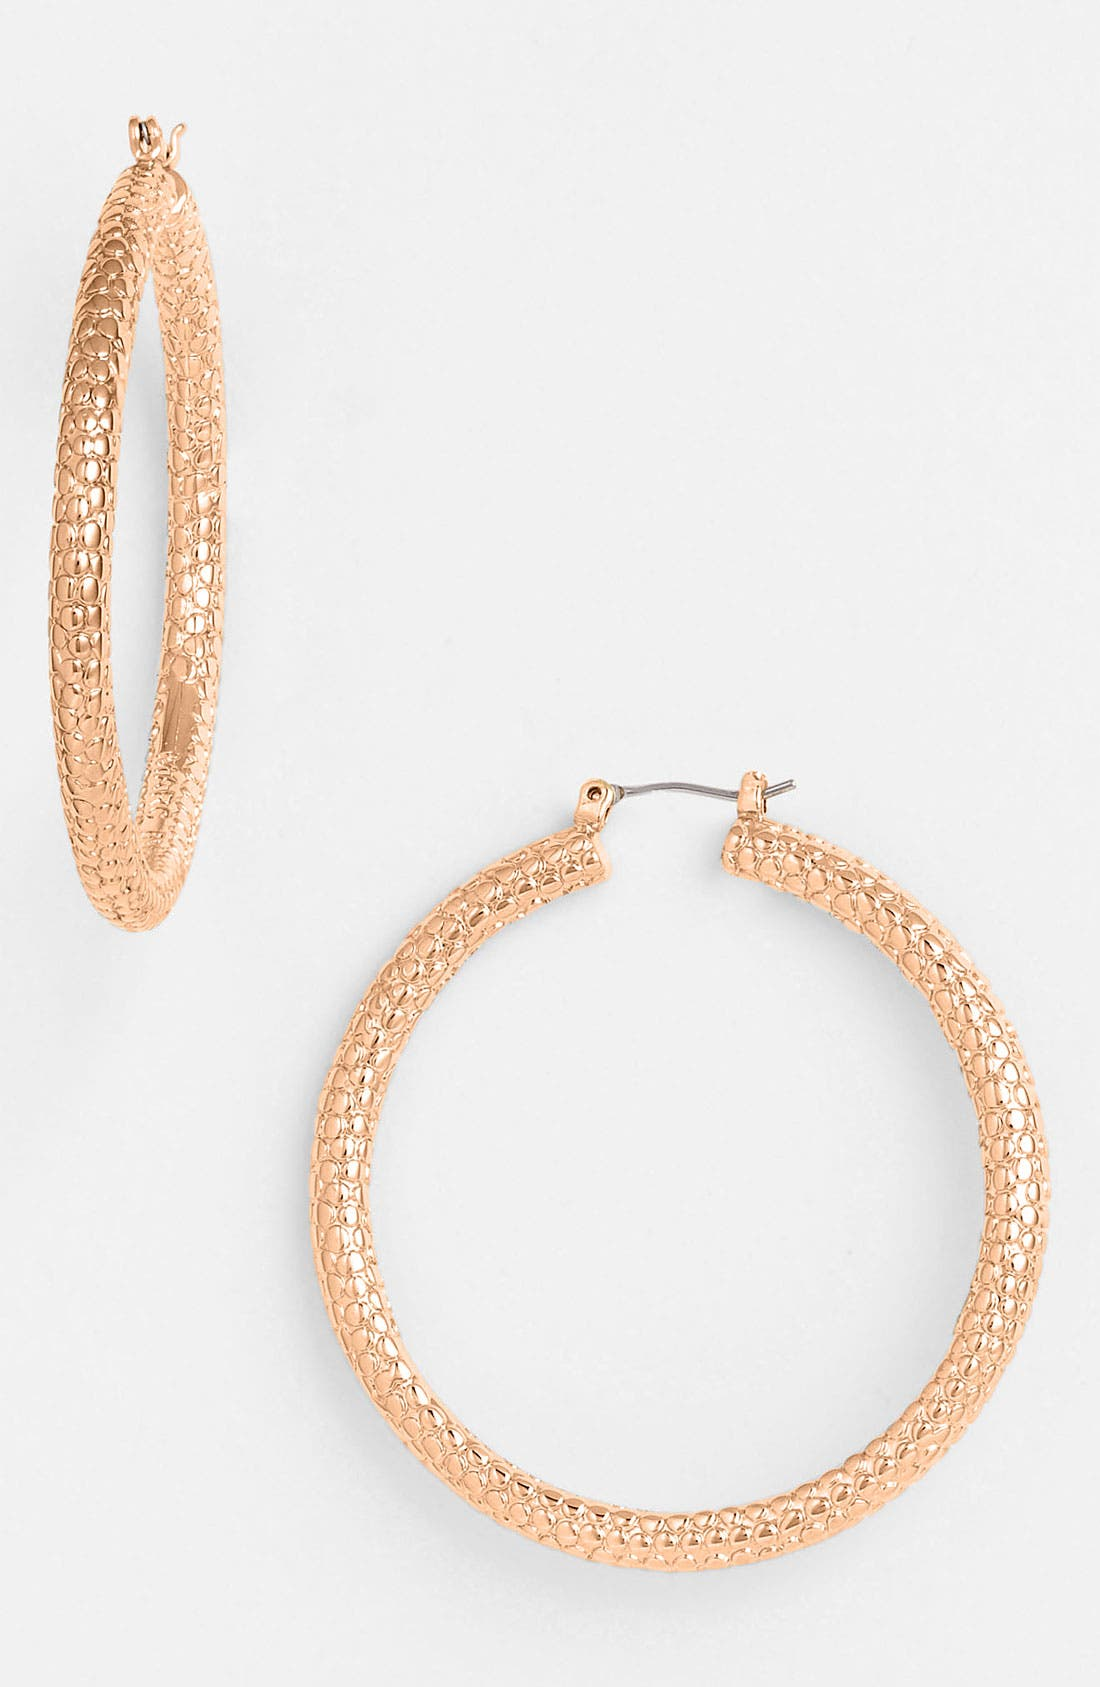 Main Image - MARC BY MARC JACOBS 'Lizard' Hoop Earrings